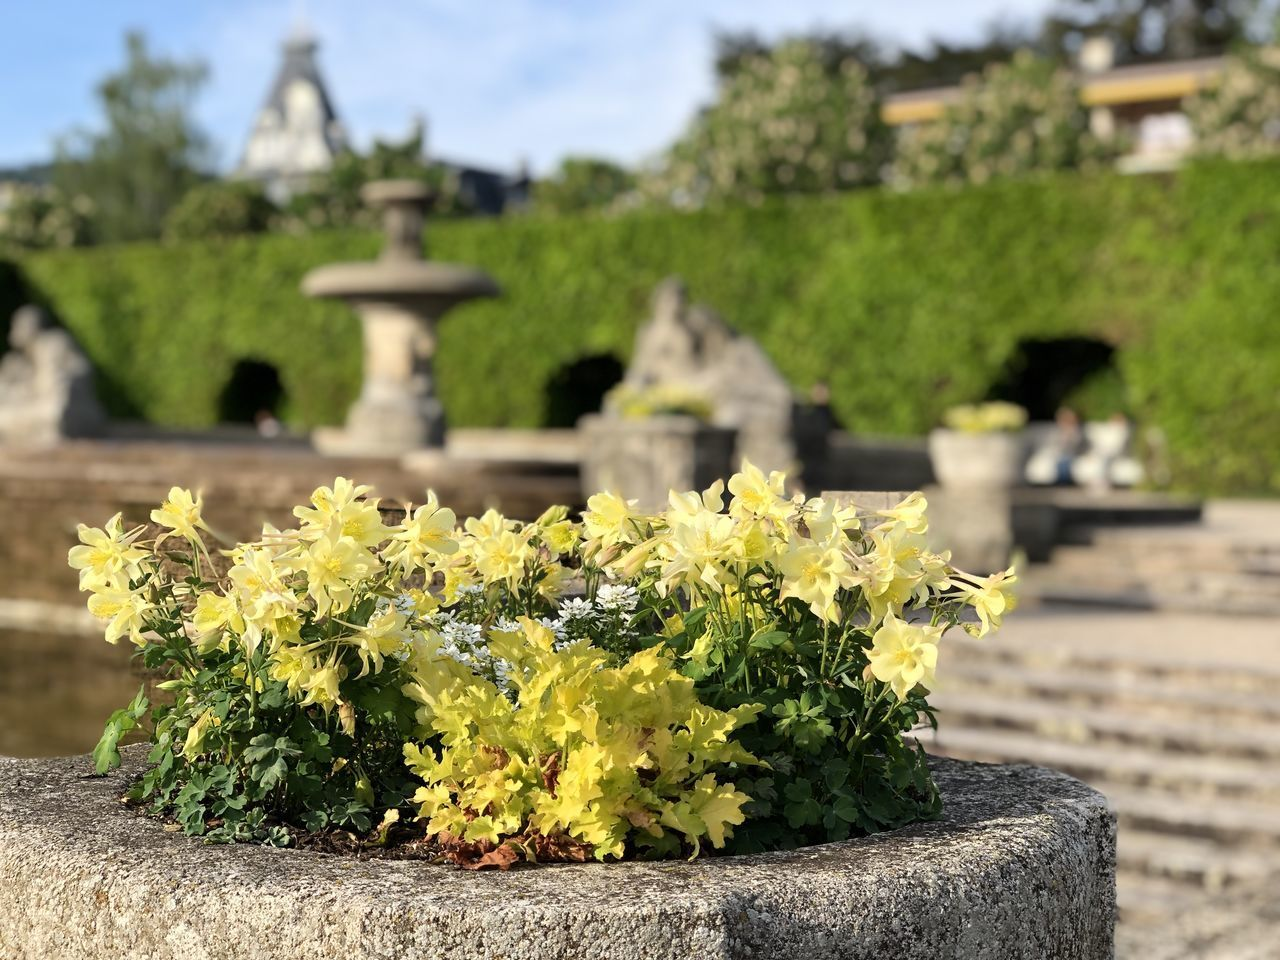 YELLOW FLOWERING PLANT AT CEMETERY AGAINST TEMPLE